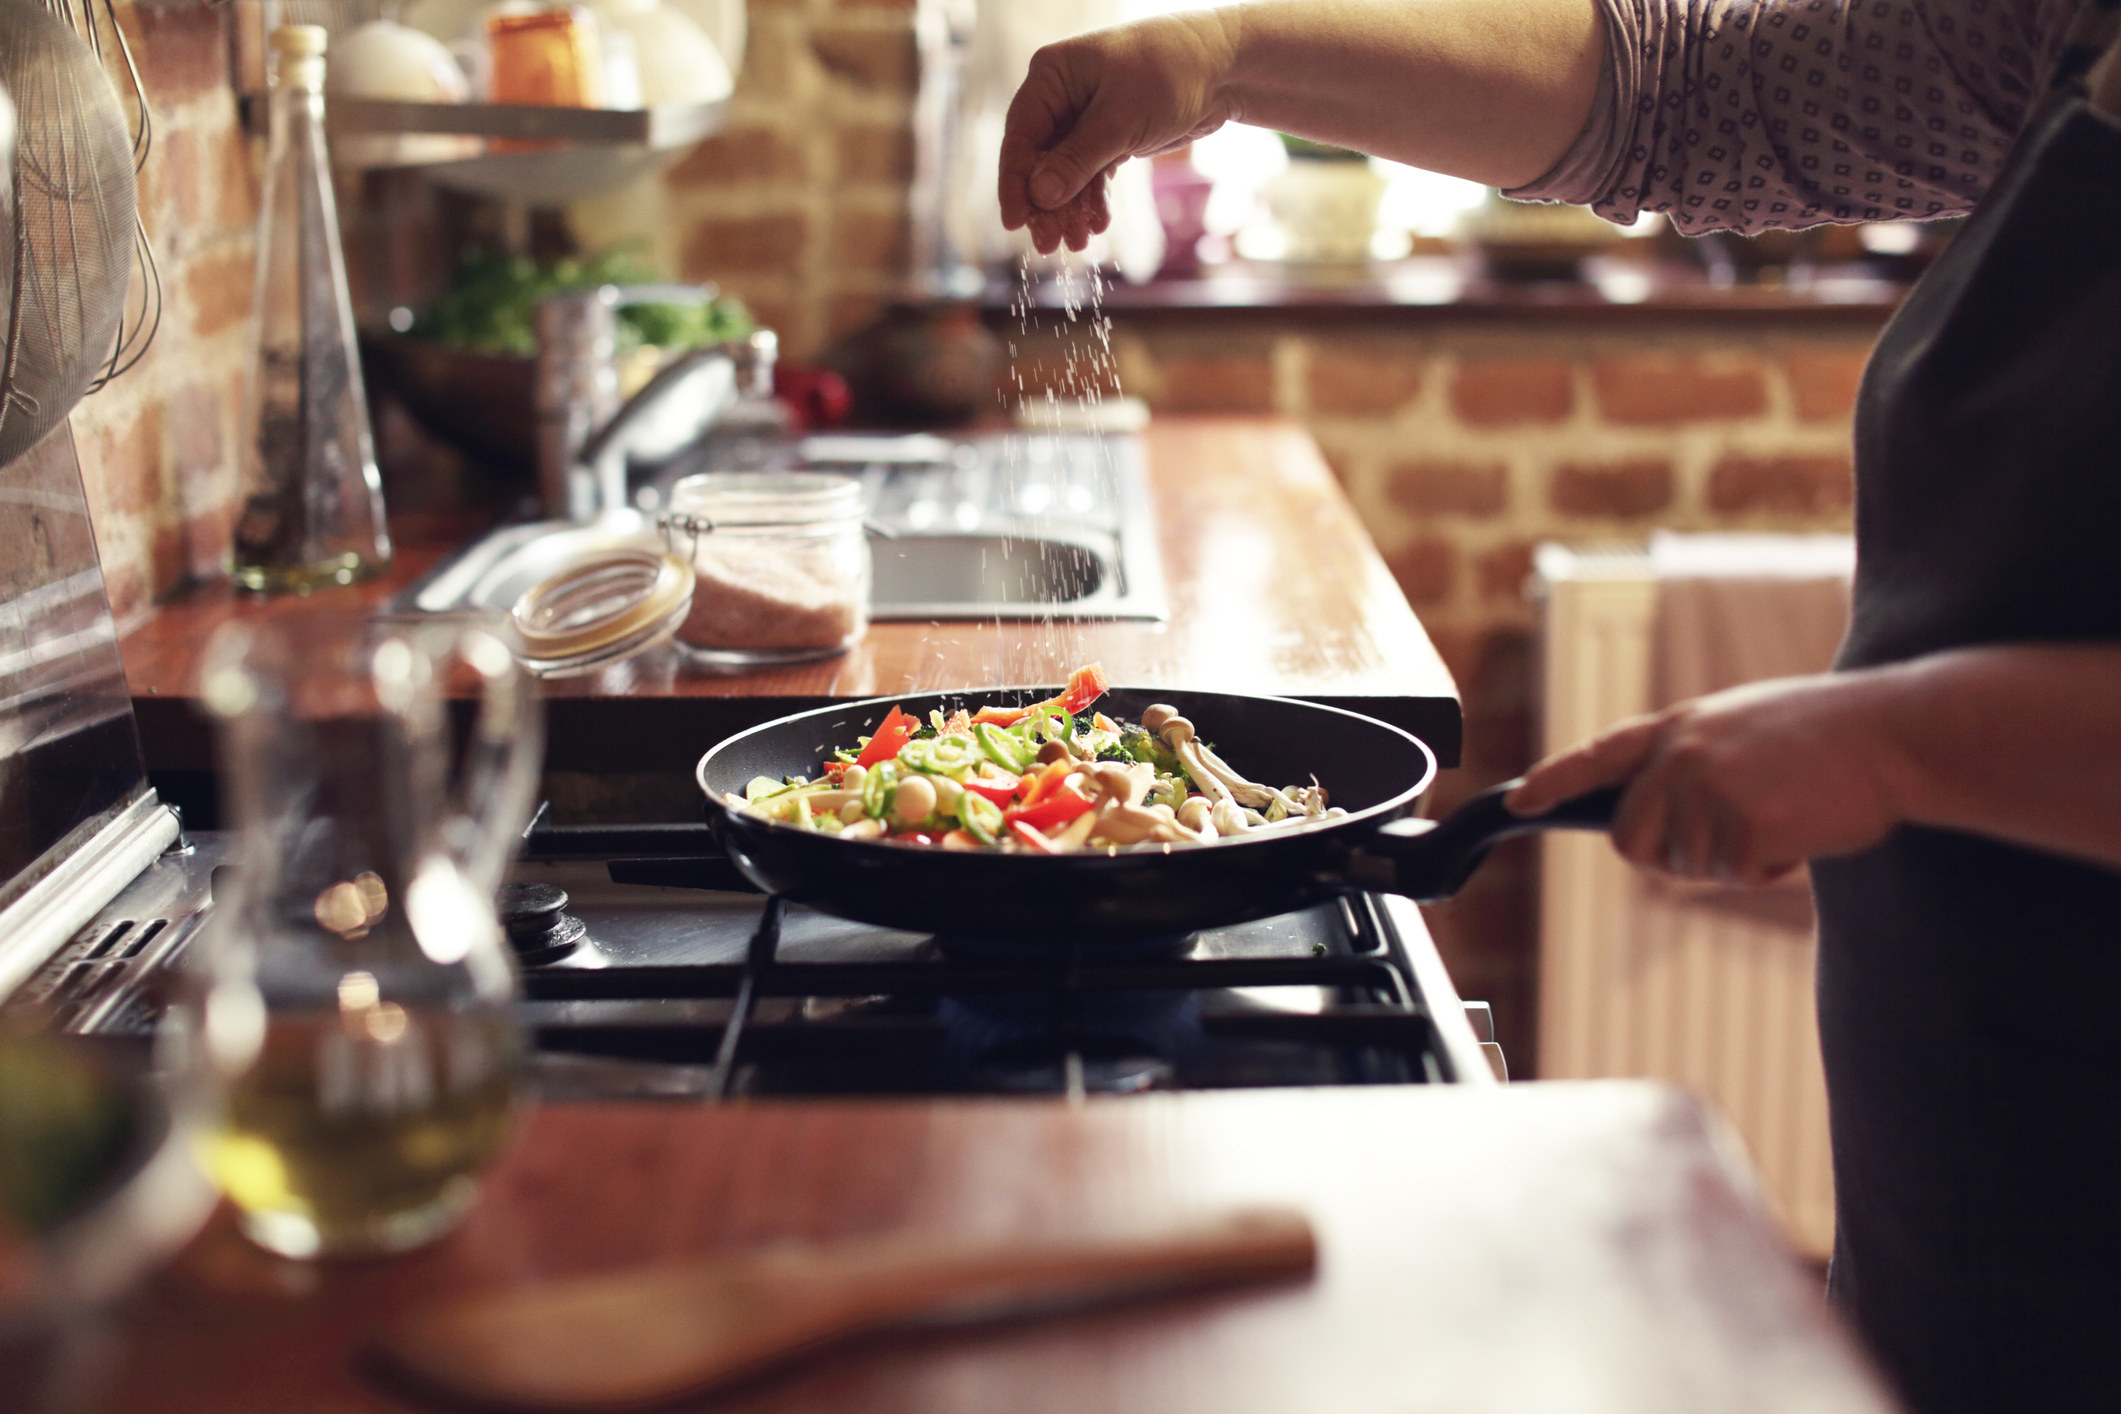 A woman salting her vegetables as they cook in the pan.